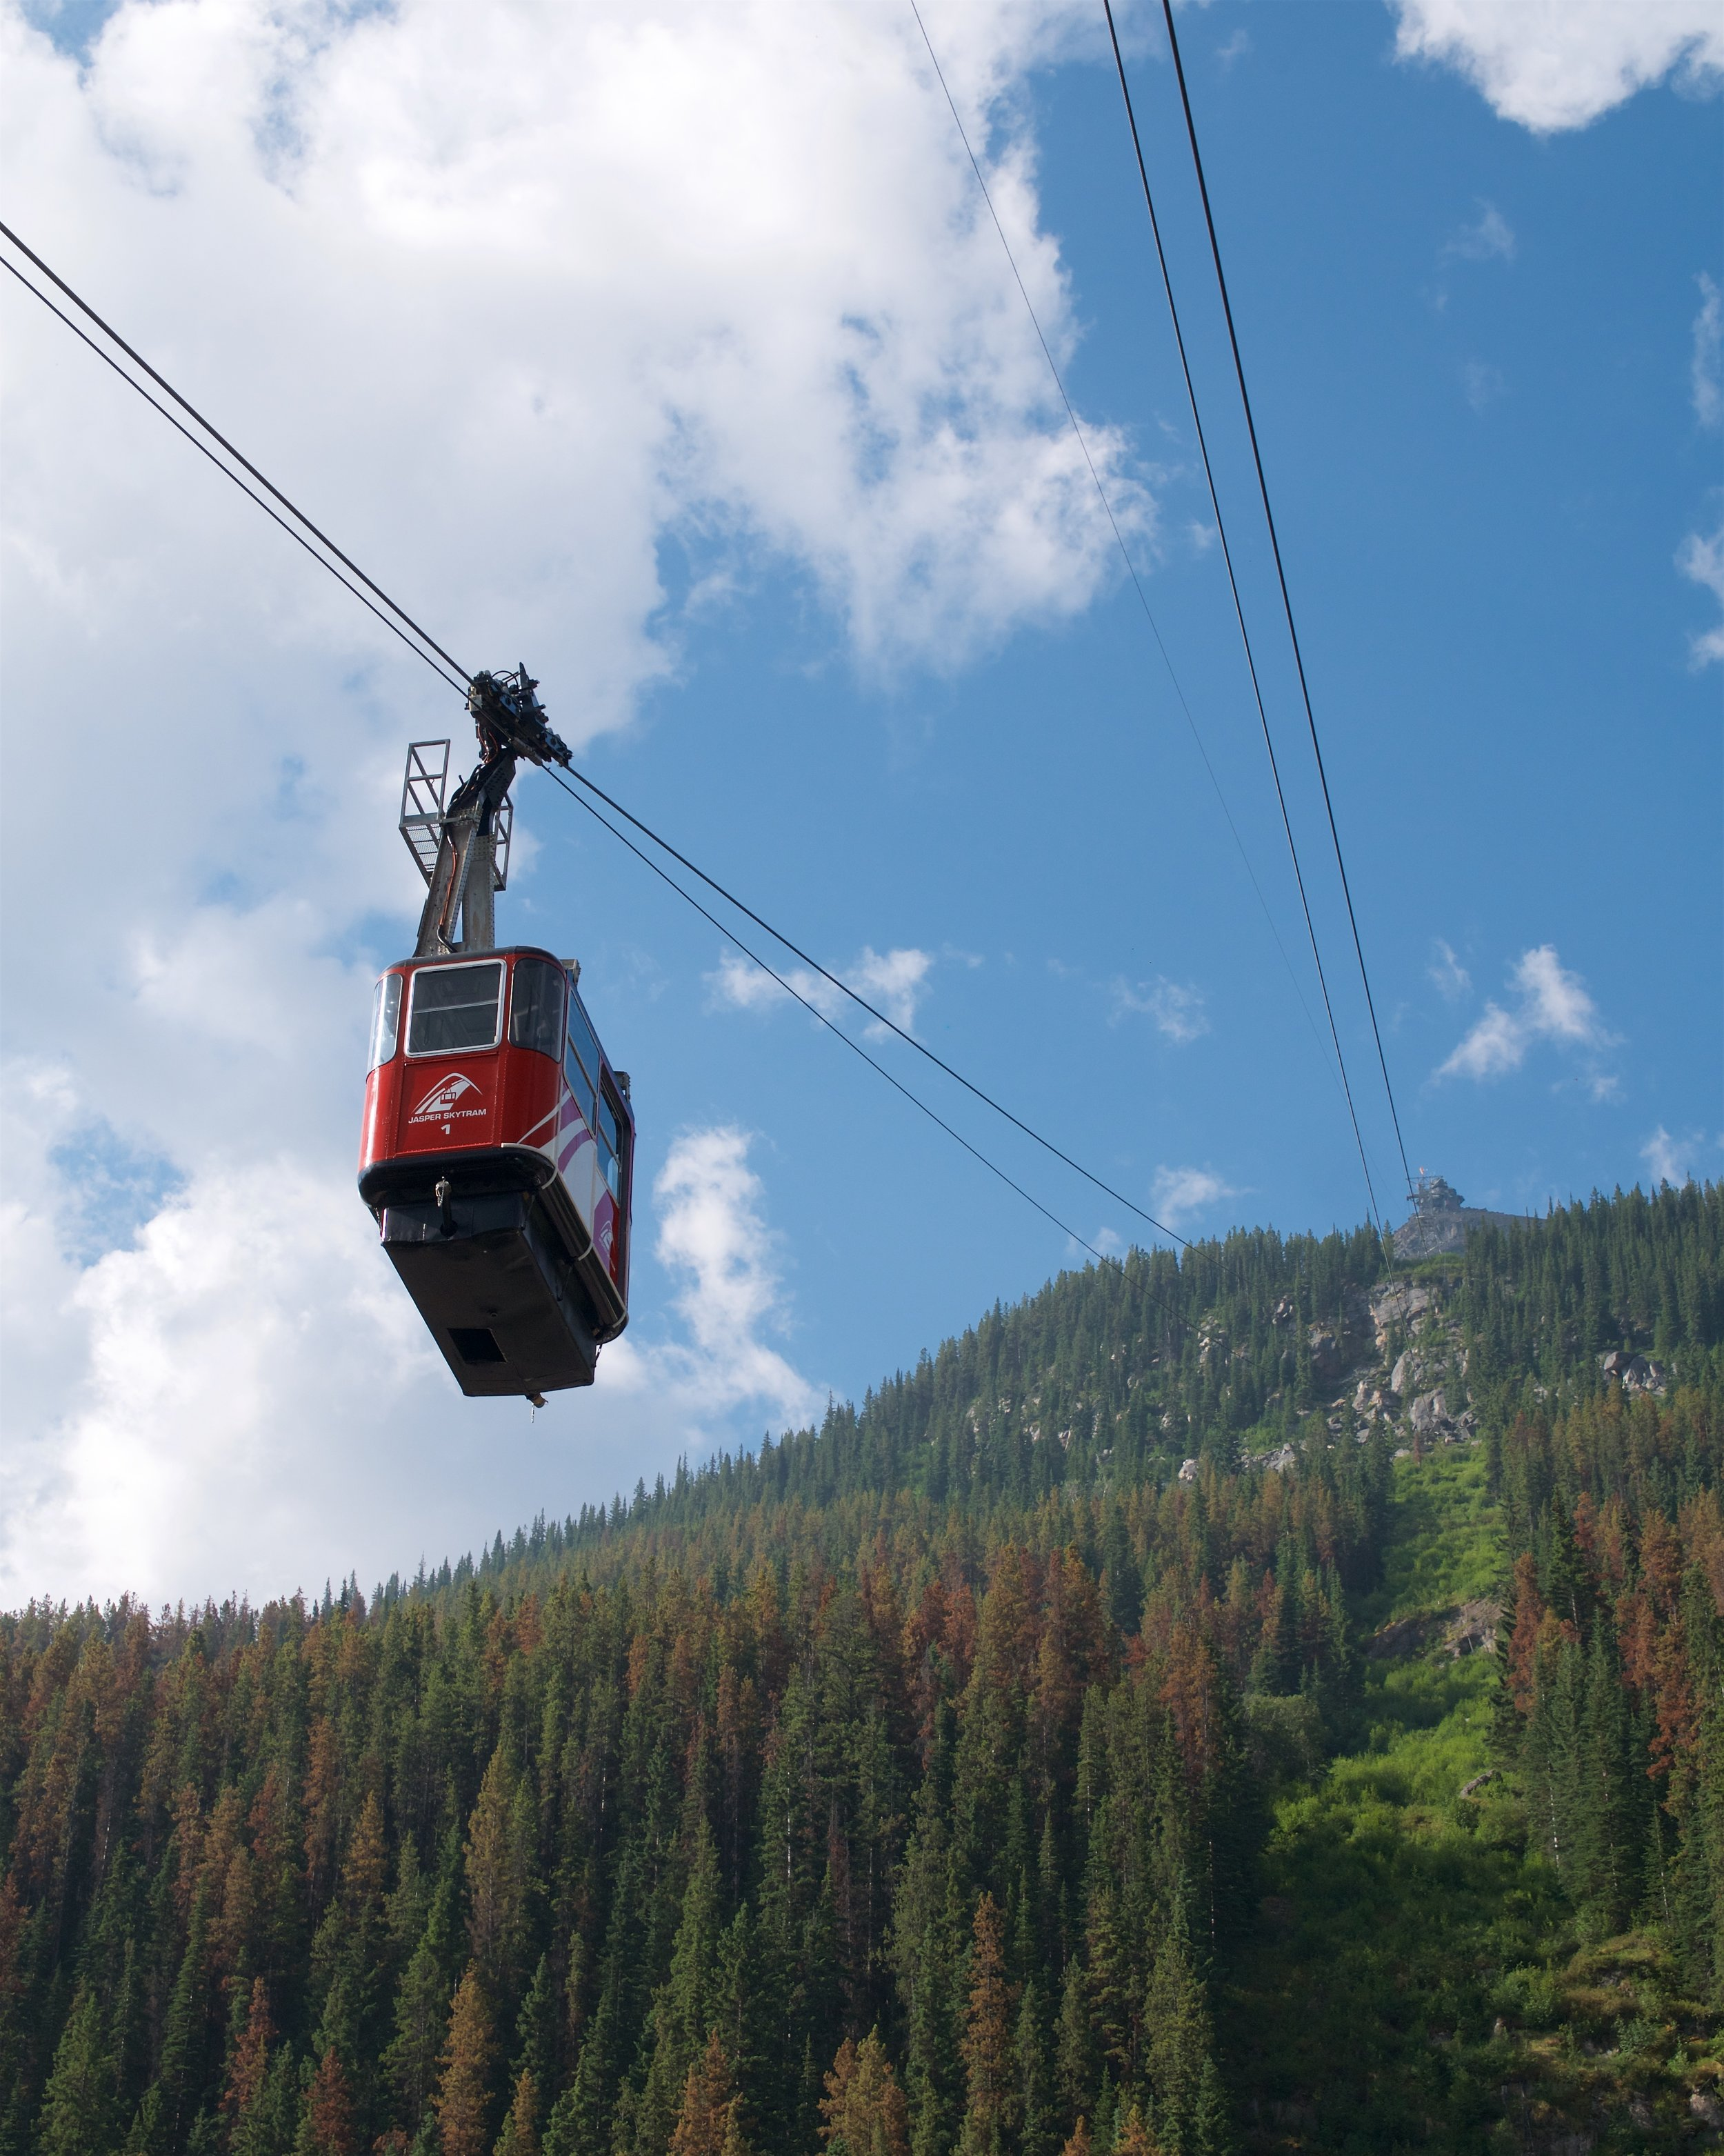 One of the two gondolas